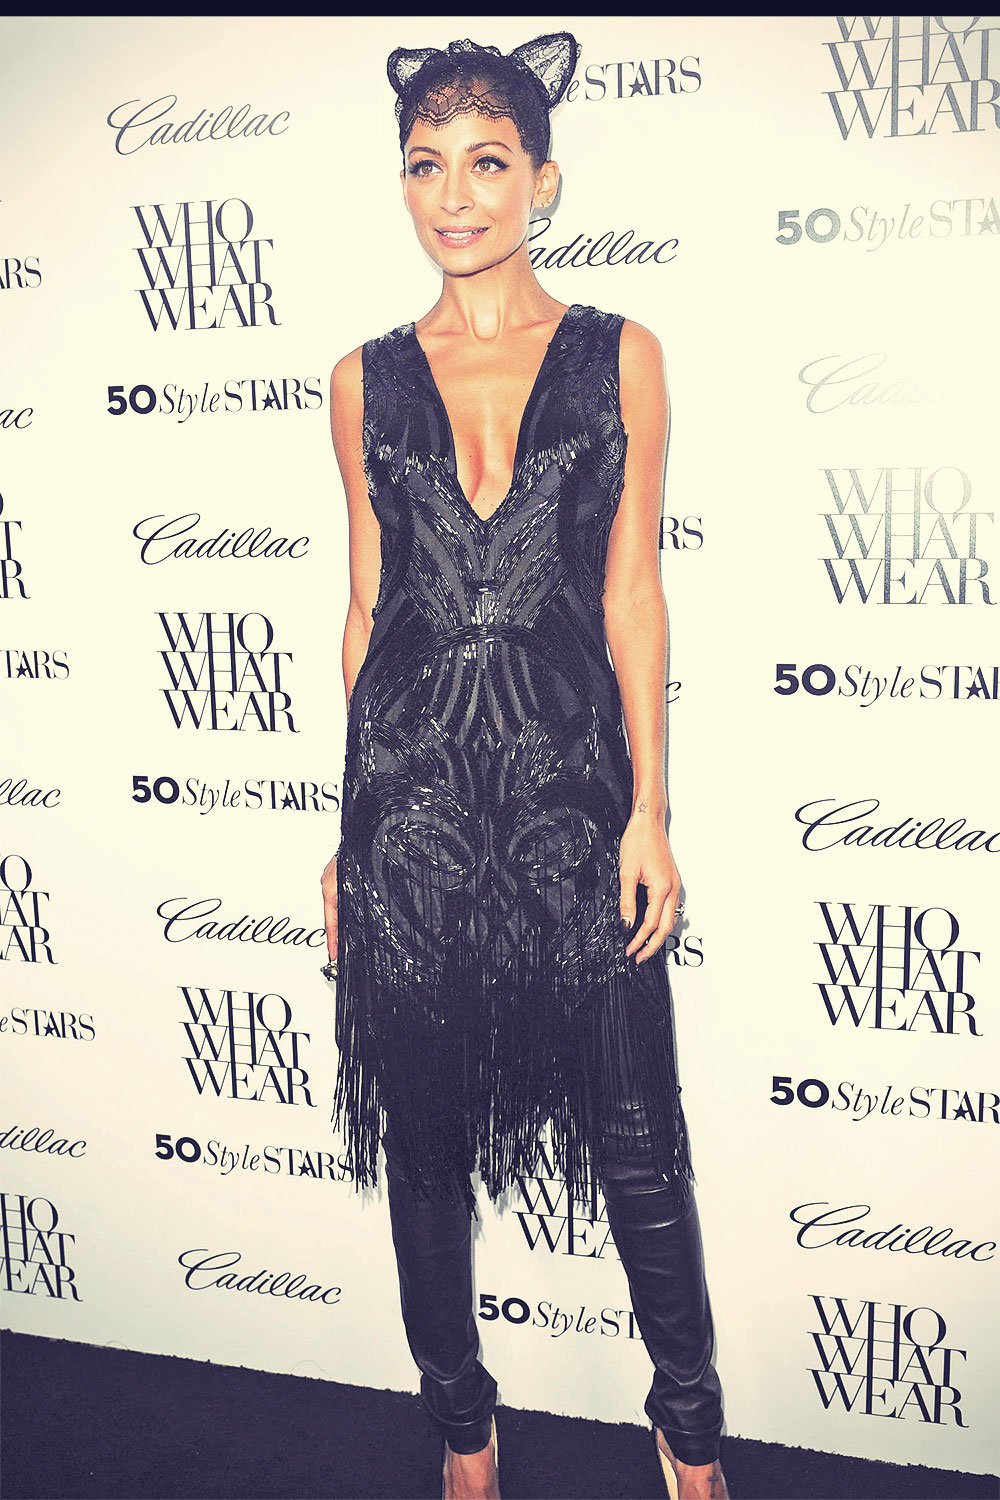 Nicole Richie attends 50 Most Fashionable Women Of 2013 Event